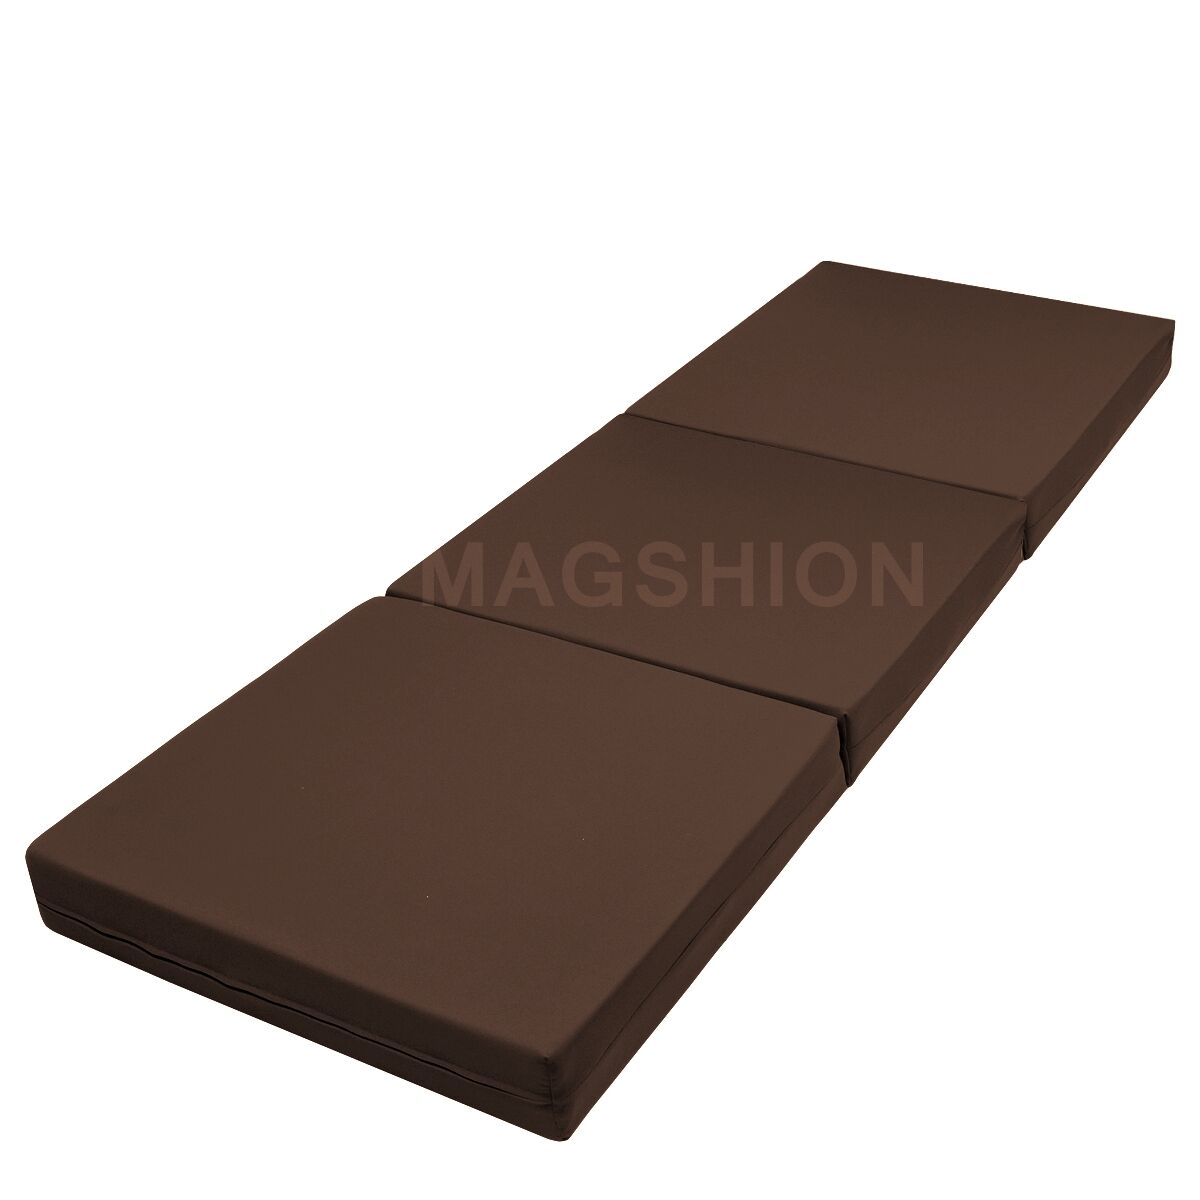 Floor mattress tatami foam mat foam bed trifold folding mattresses brown ebay Where to buy mattress foam